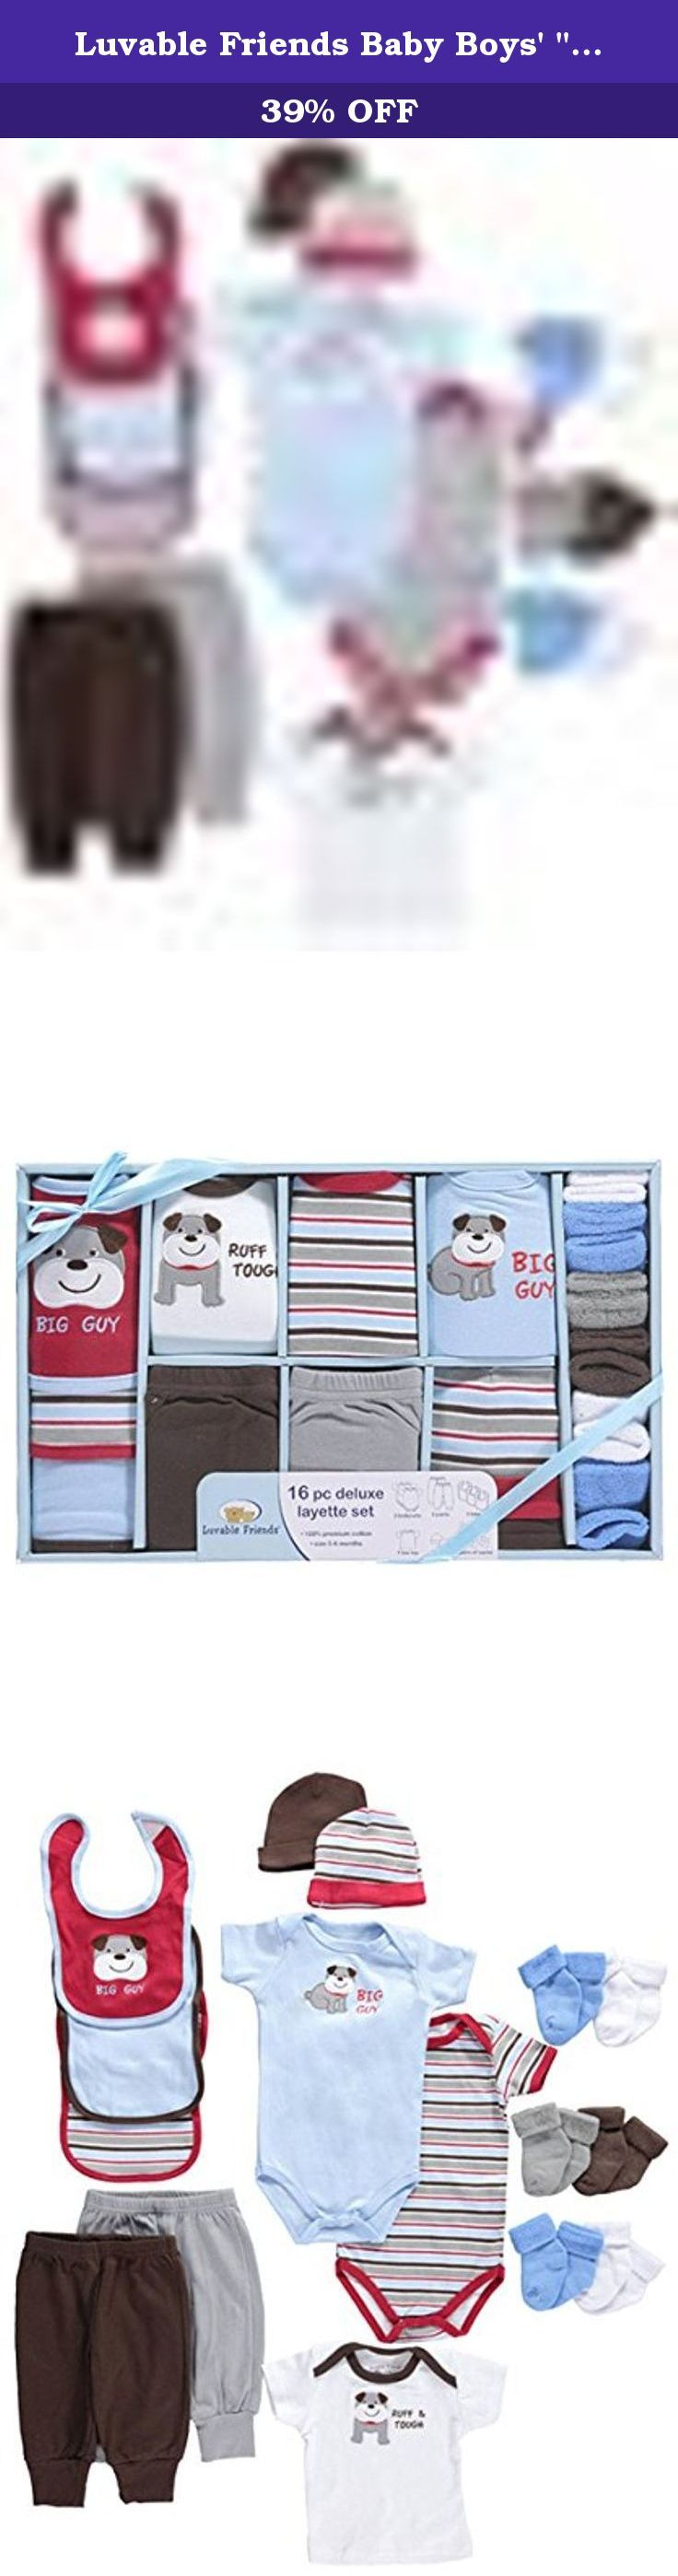 """Luvable Friends Baby Boys' """"Big Dog"""" 16-Piece Layette Set - blue, 0 - 6 months. Ensure your new arrival has outfits galore with this comprehensive 16-piece set from Luvable Friends. All items are made of the very softest cotton. A variety of patterns and adornments offers great mix-n-match options. The view-thru gift packaging is perfect for showers. Includes: 2 Bodysuits (100% Cotton) 2 Pants (100% Cotton) 3 Bibs (100% Cotton) 1 T-Shirt (100% Cotton) 2 Caps (100% Cotton) 6 Socks (100%..."""